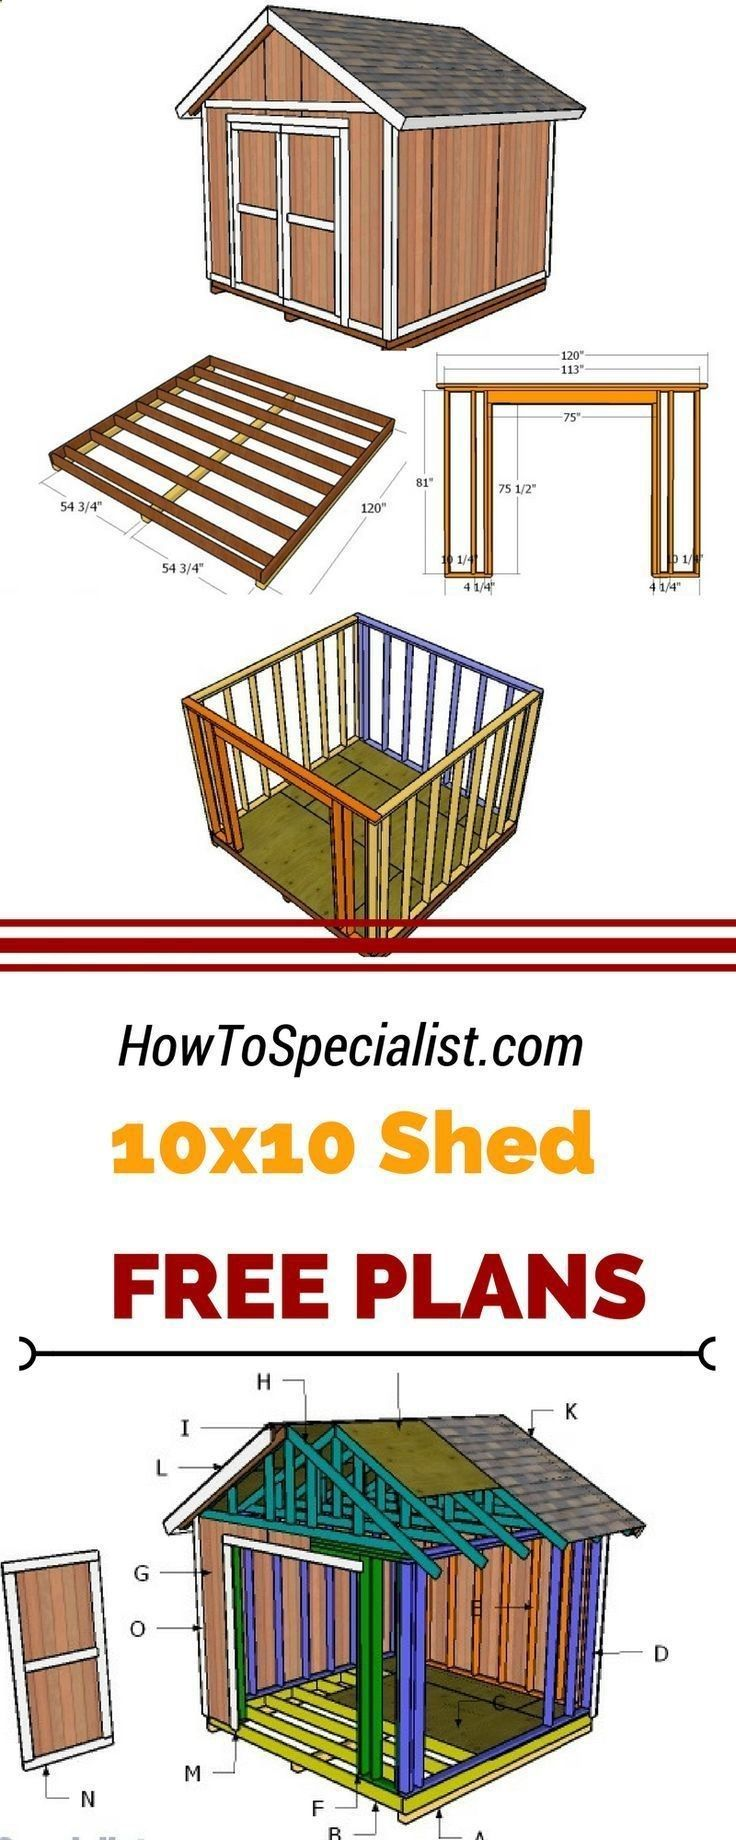 Framing A 10x10 Room: Garden Shed: Using It As A Workshop Or Craft Room